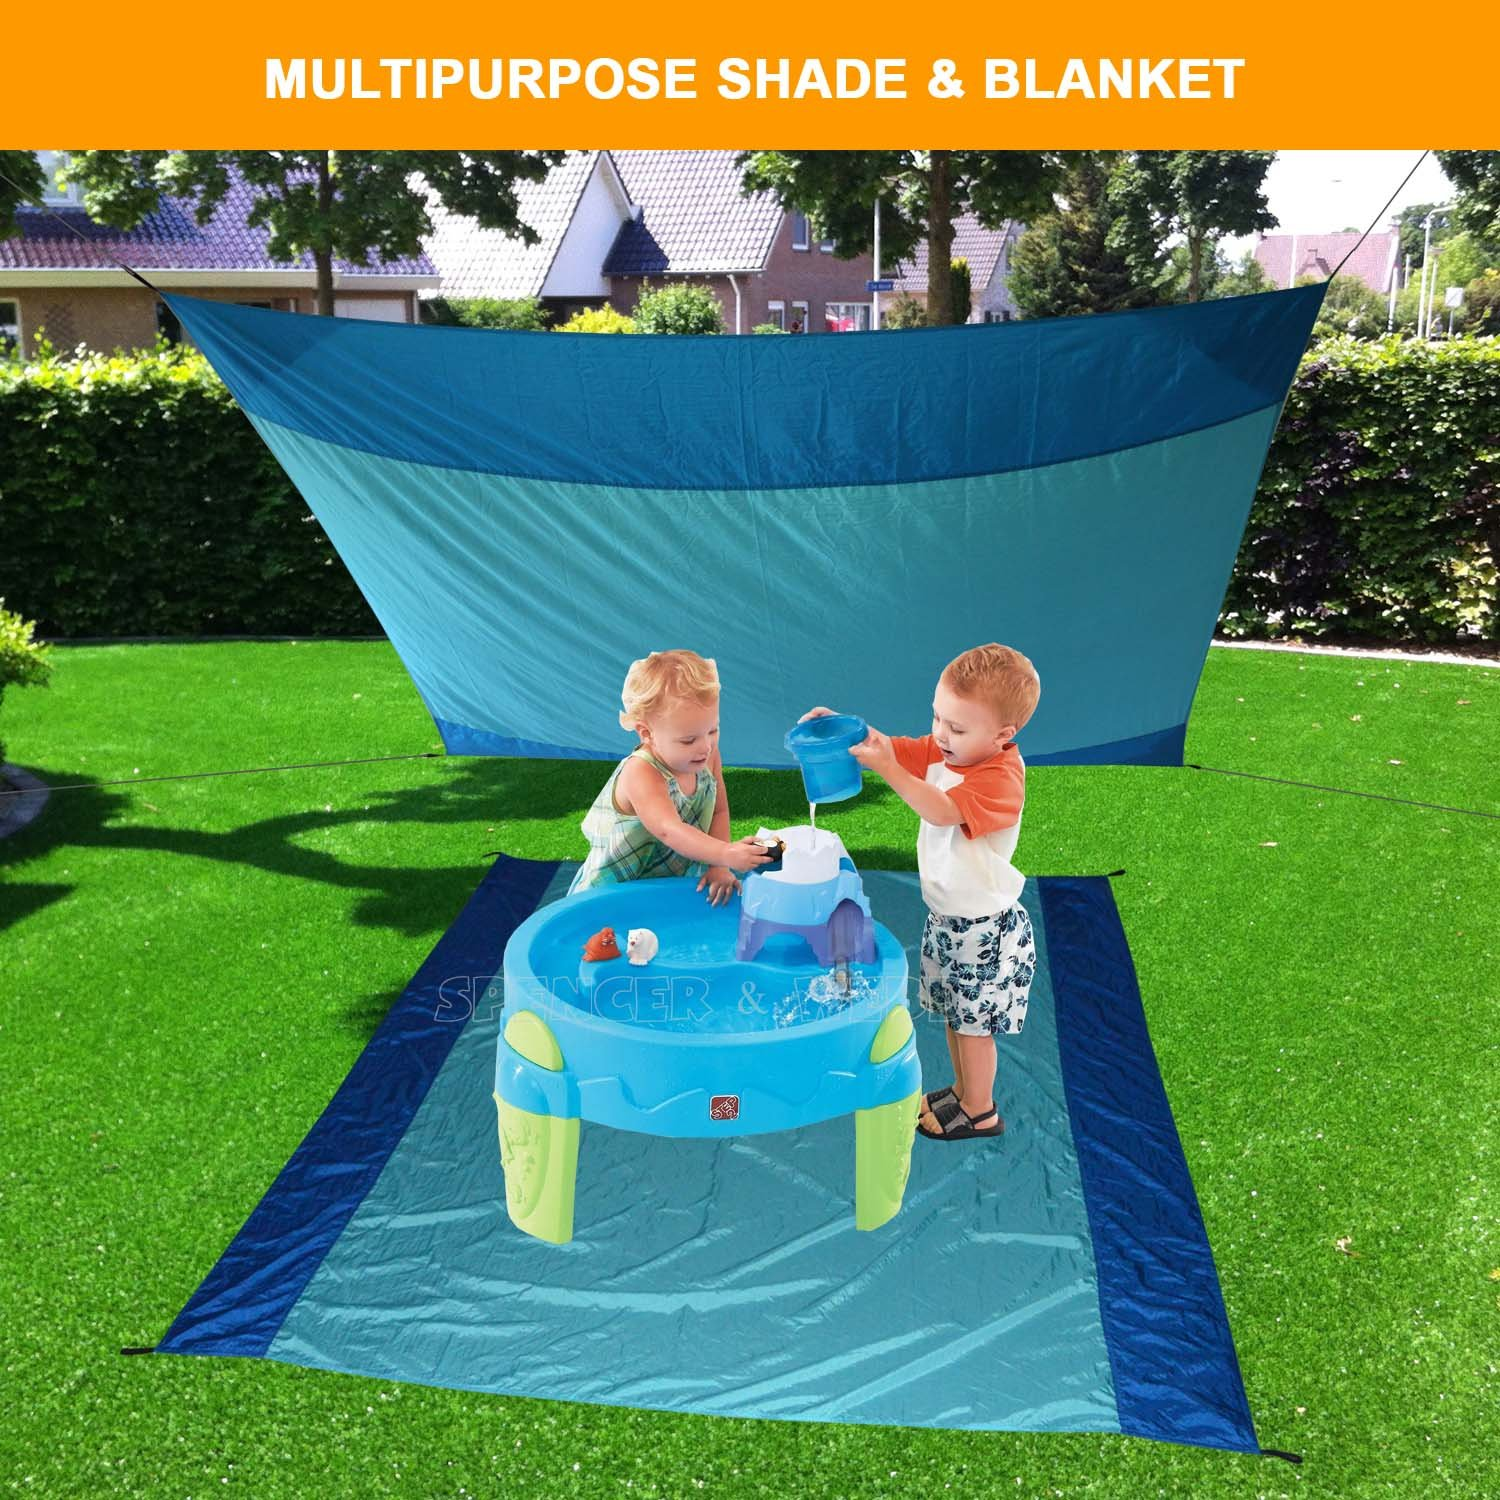 [Pack of 5] Sand Proof Beach Picnic Blanket of Parachute Nylon, works as Shade Tarp Sheet for your Sandless travel escape perfect for drying towel not a black microfiber waterproof or resistant mat by Spencer&Webb (Image #3)